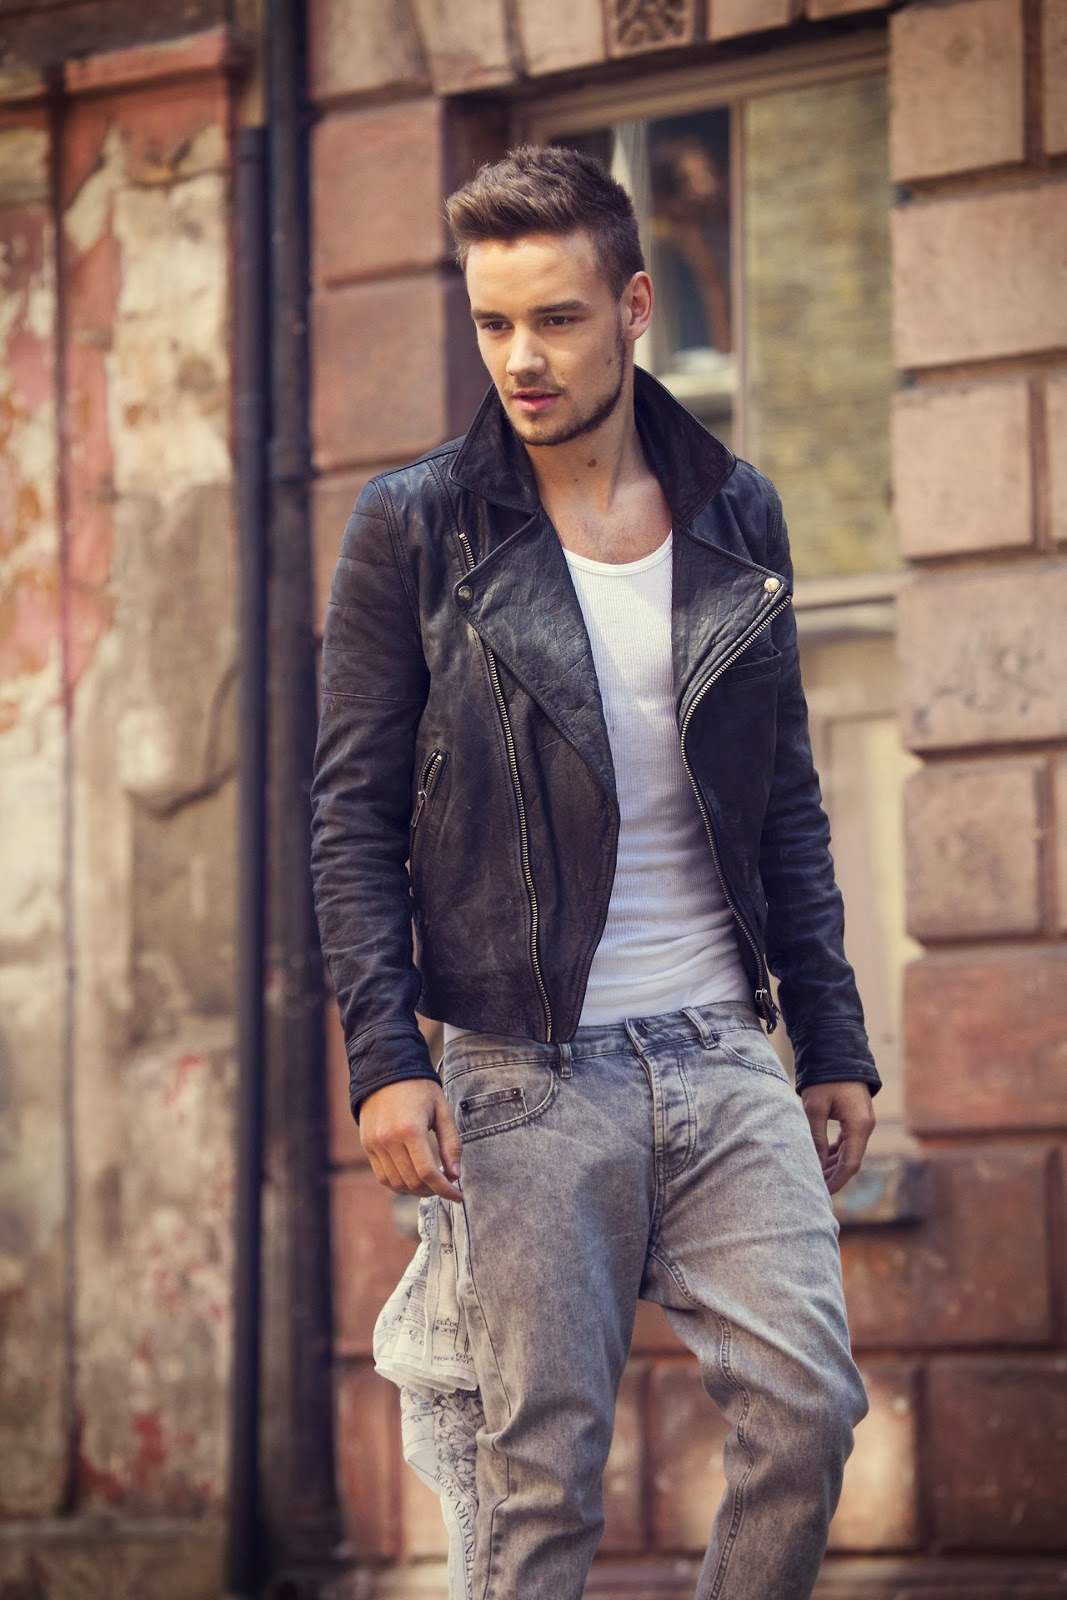 one direction,1d, liam payne,  midnight memories, photoshoot, servizio fotografico, beautiful photo of liam, bella foto di liam